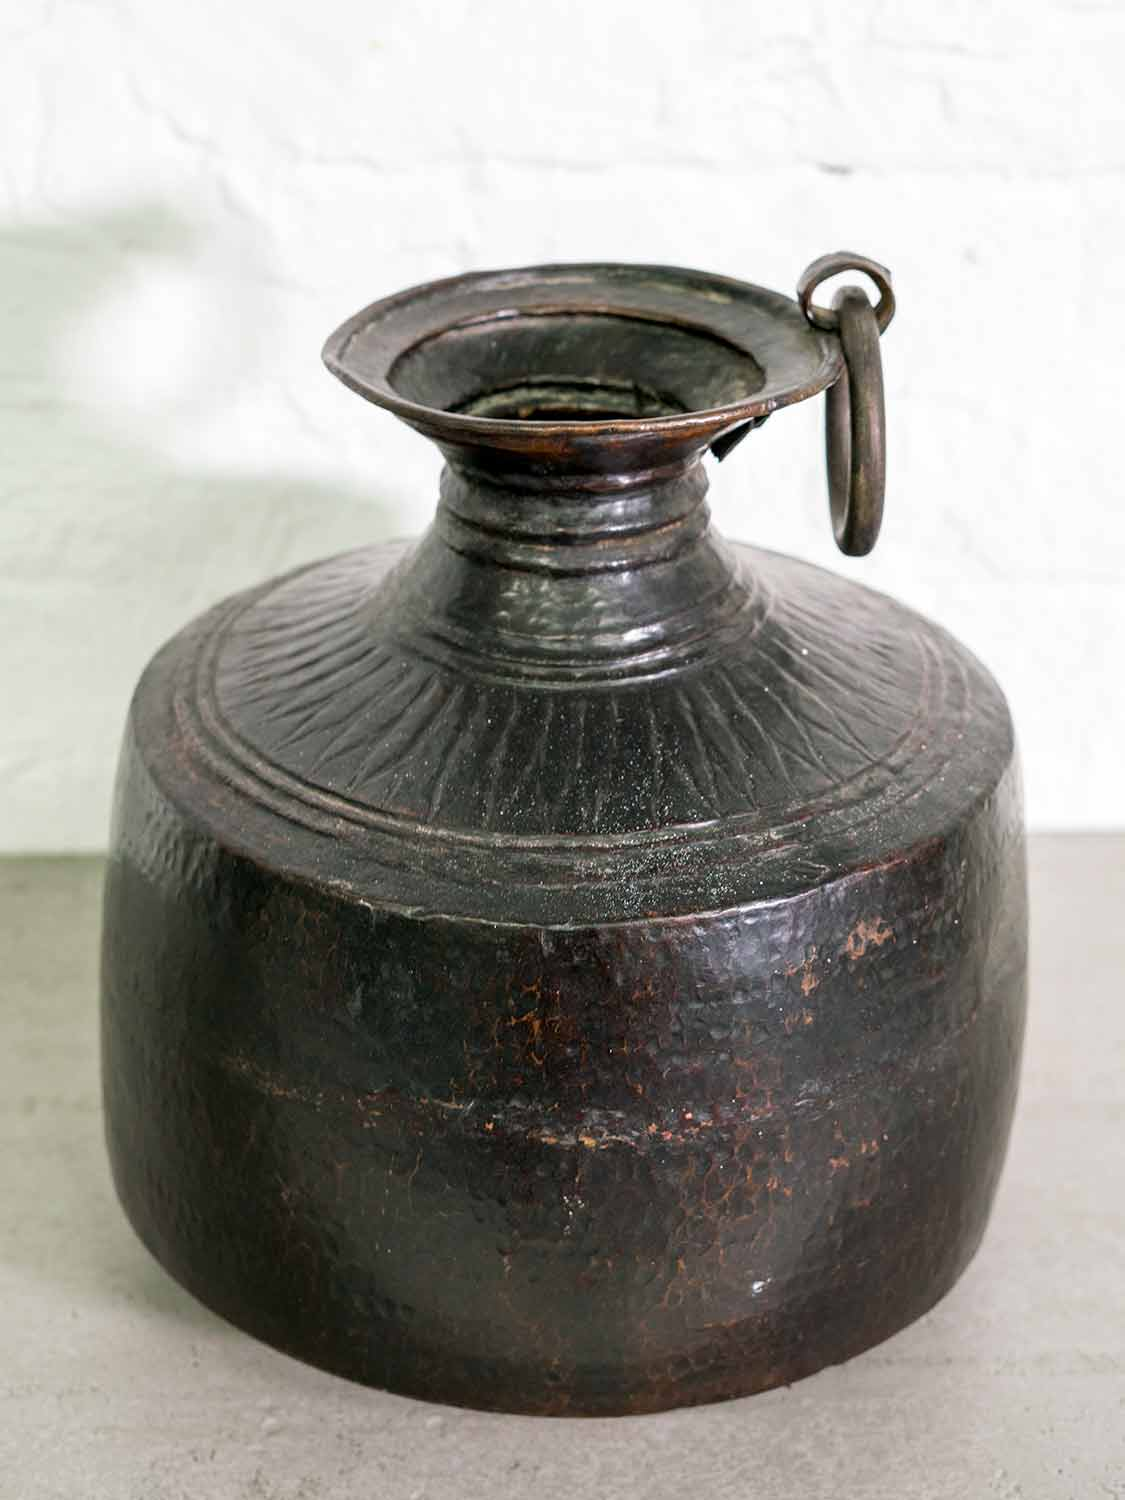 A blackened copper vase that's an everyday water pot from India